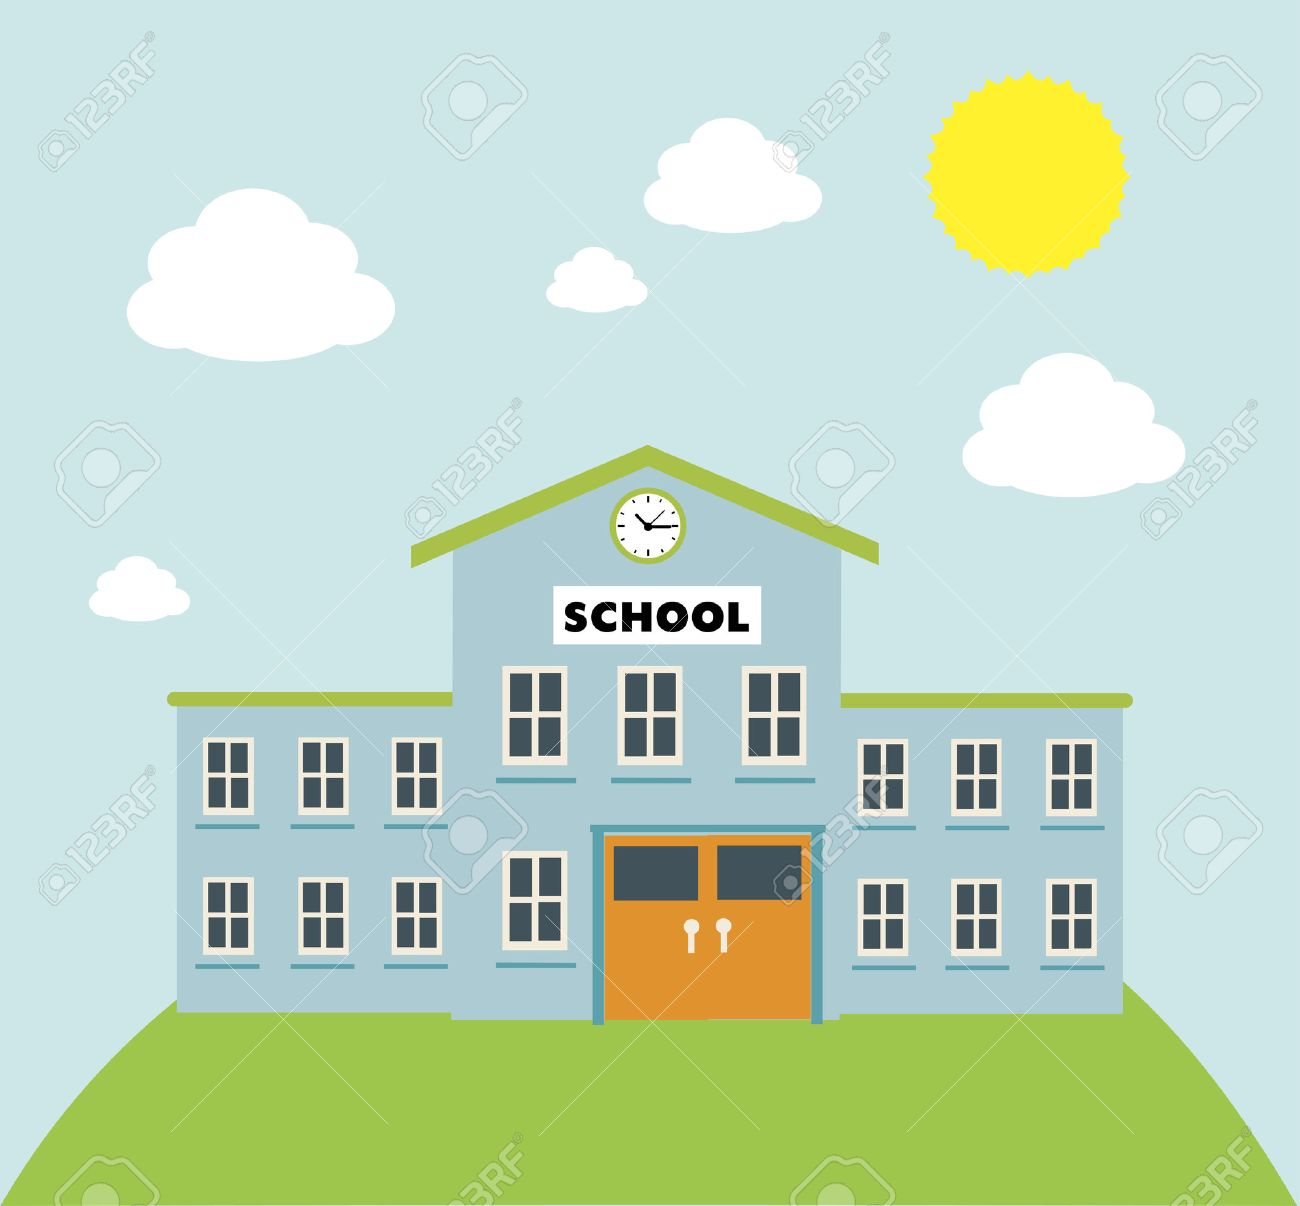 school build graphic over blue background vector illustration Stock Vector - 26413632